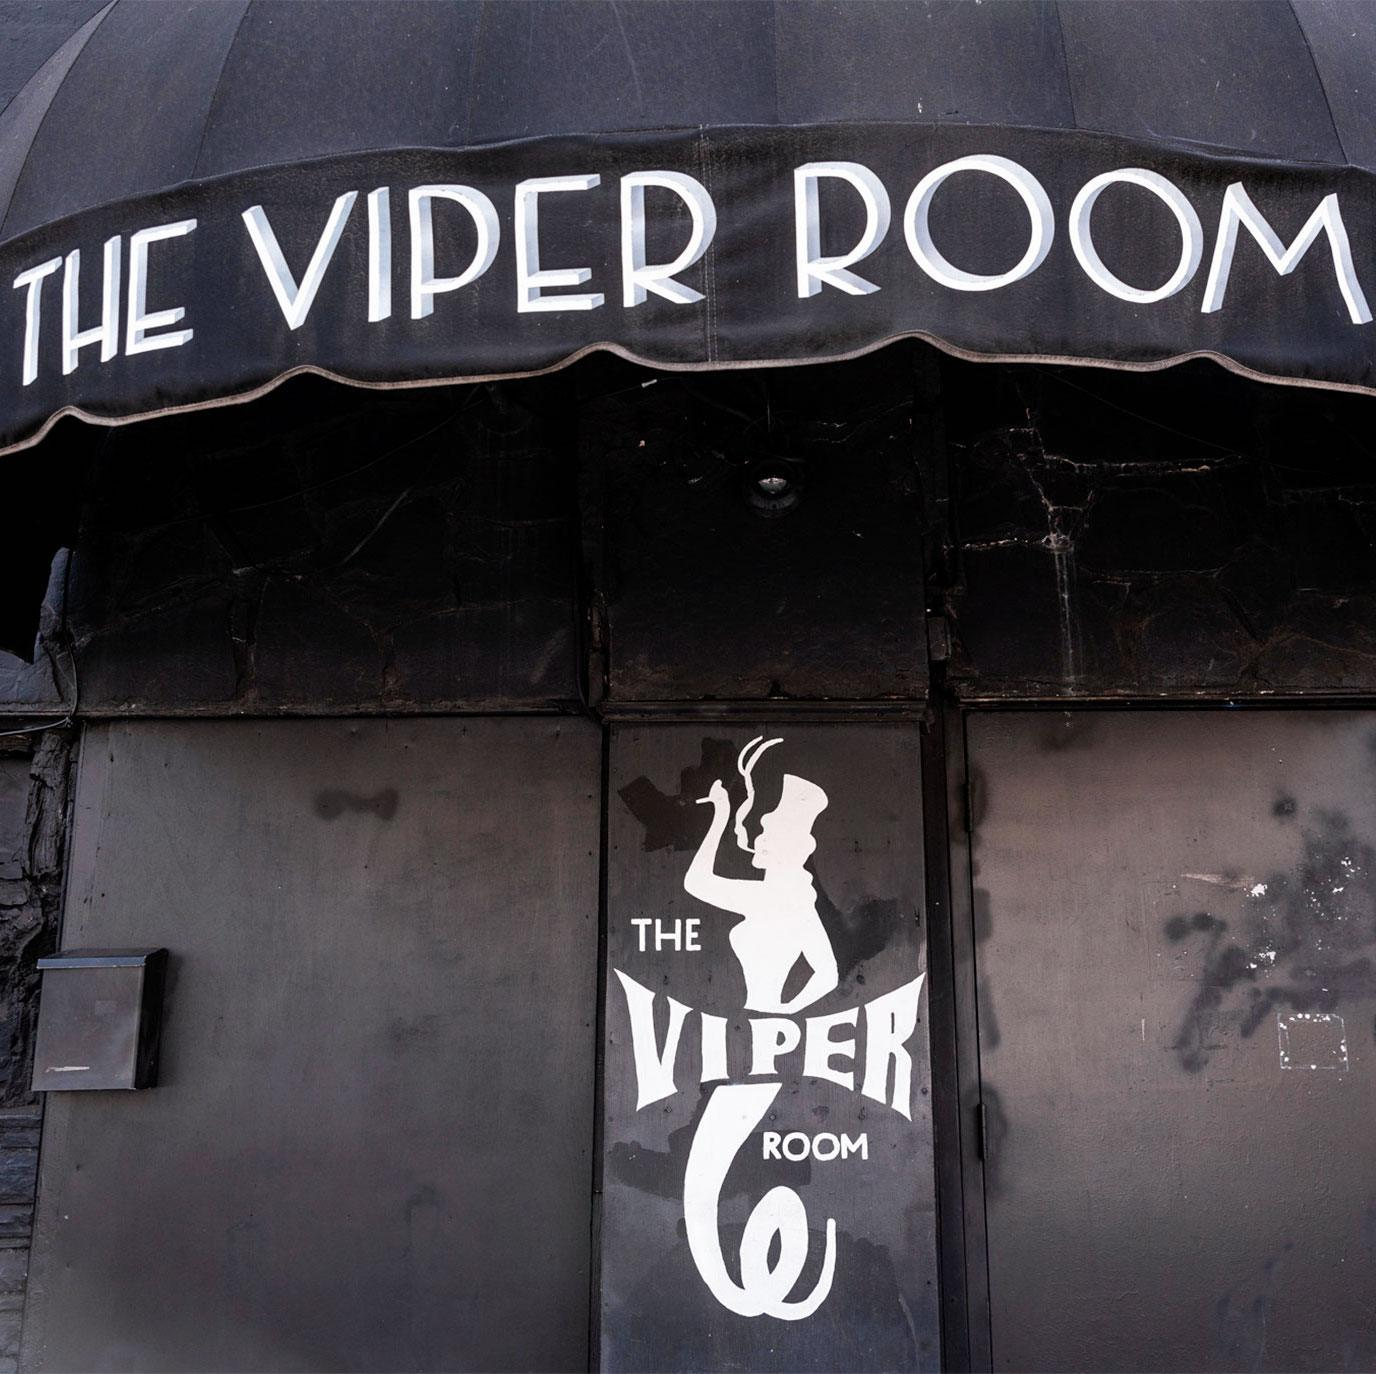 Hollywood night club The Viper Room, where River Phoenix died